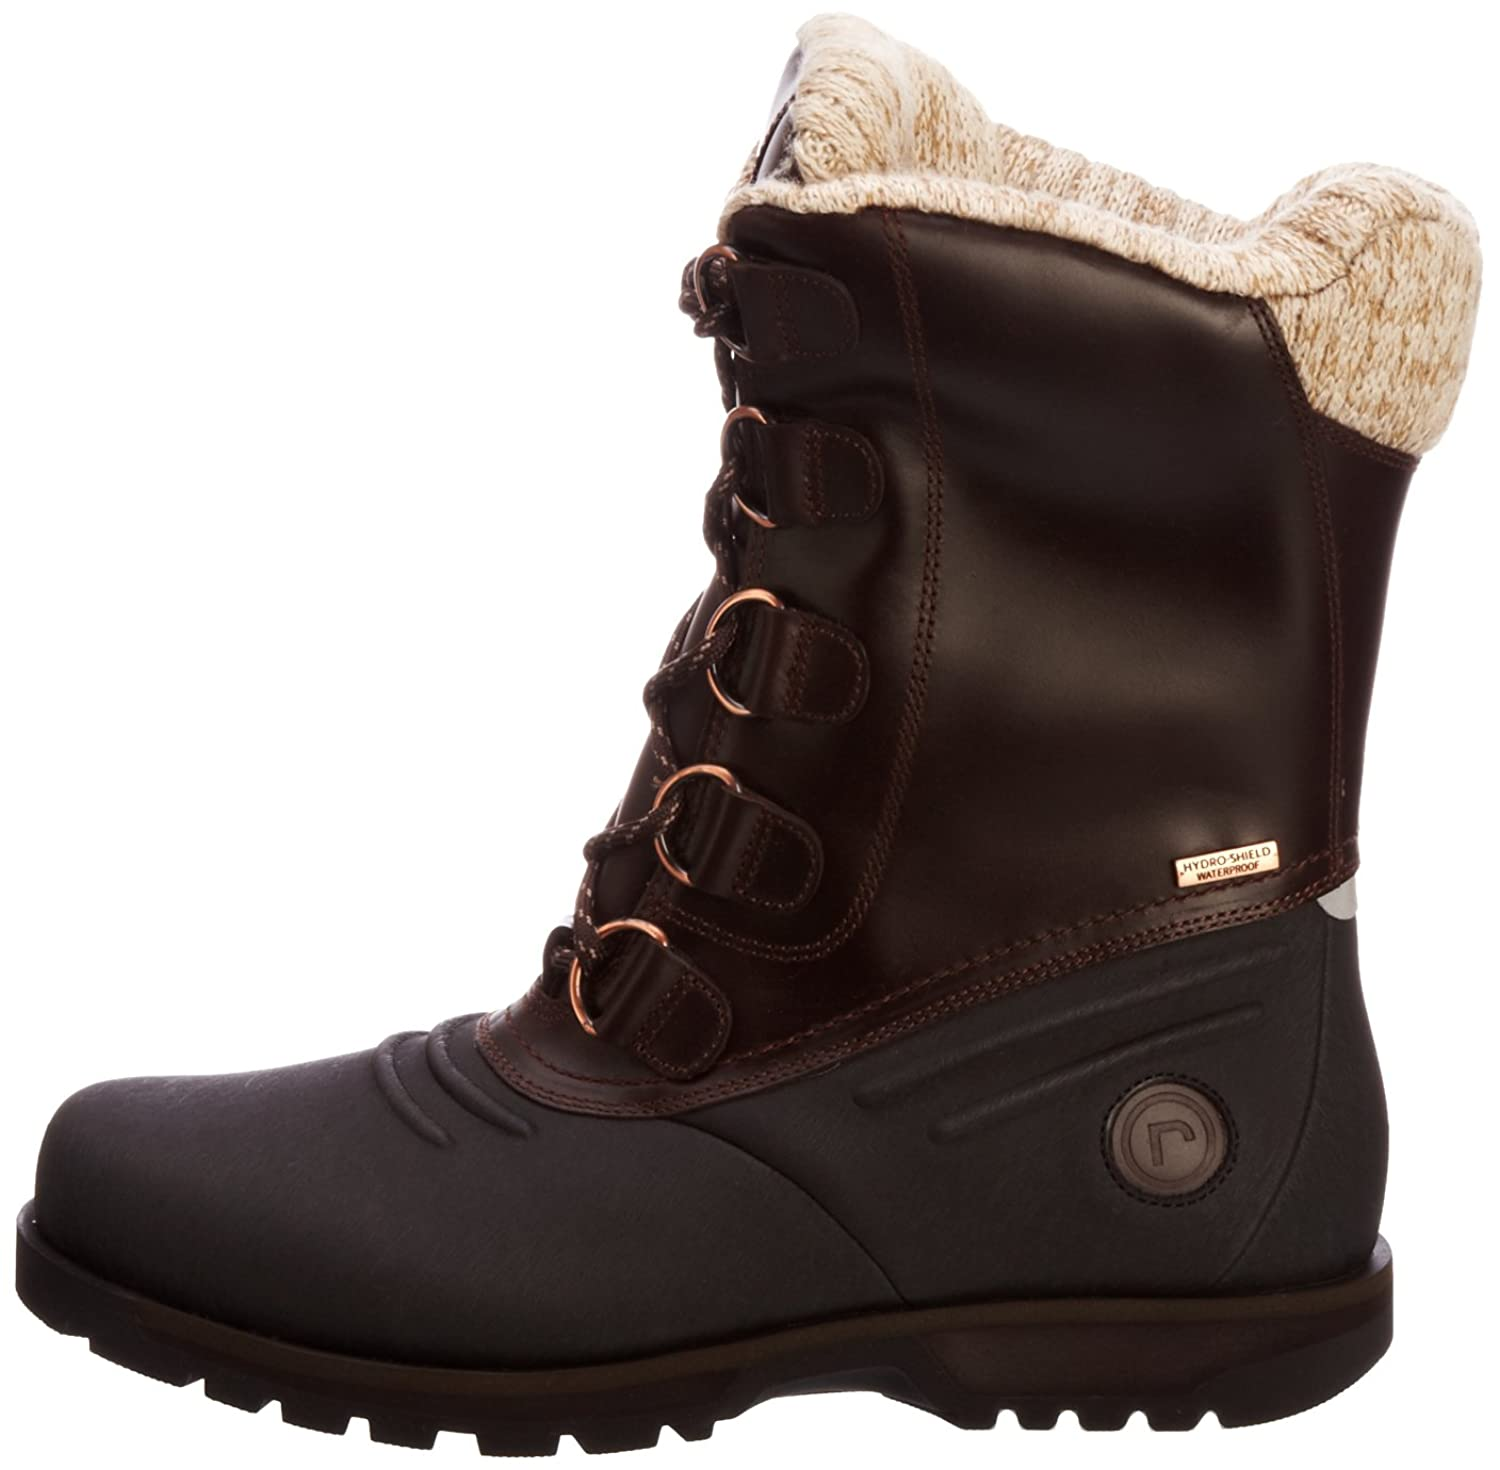 6fac0b6c8d6 Rockport Men's Lux Lodge Chili Snow Boot K62839 7 UK